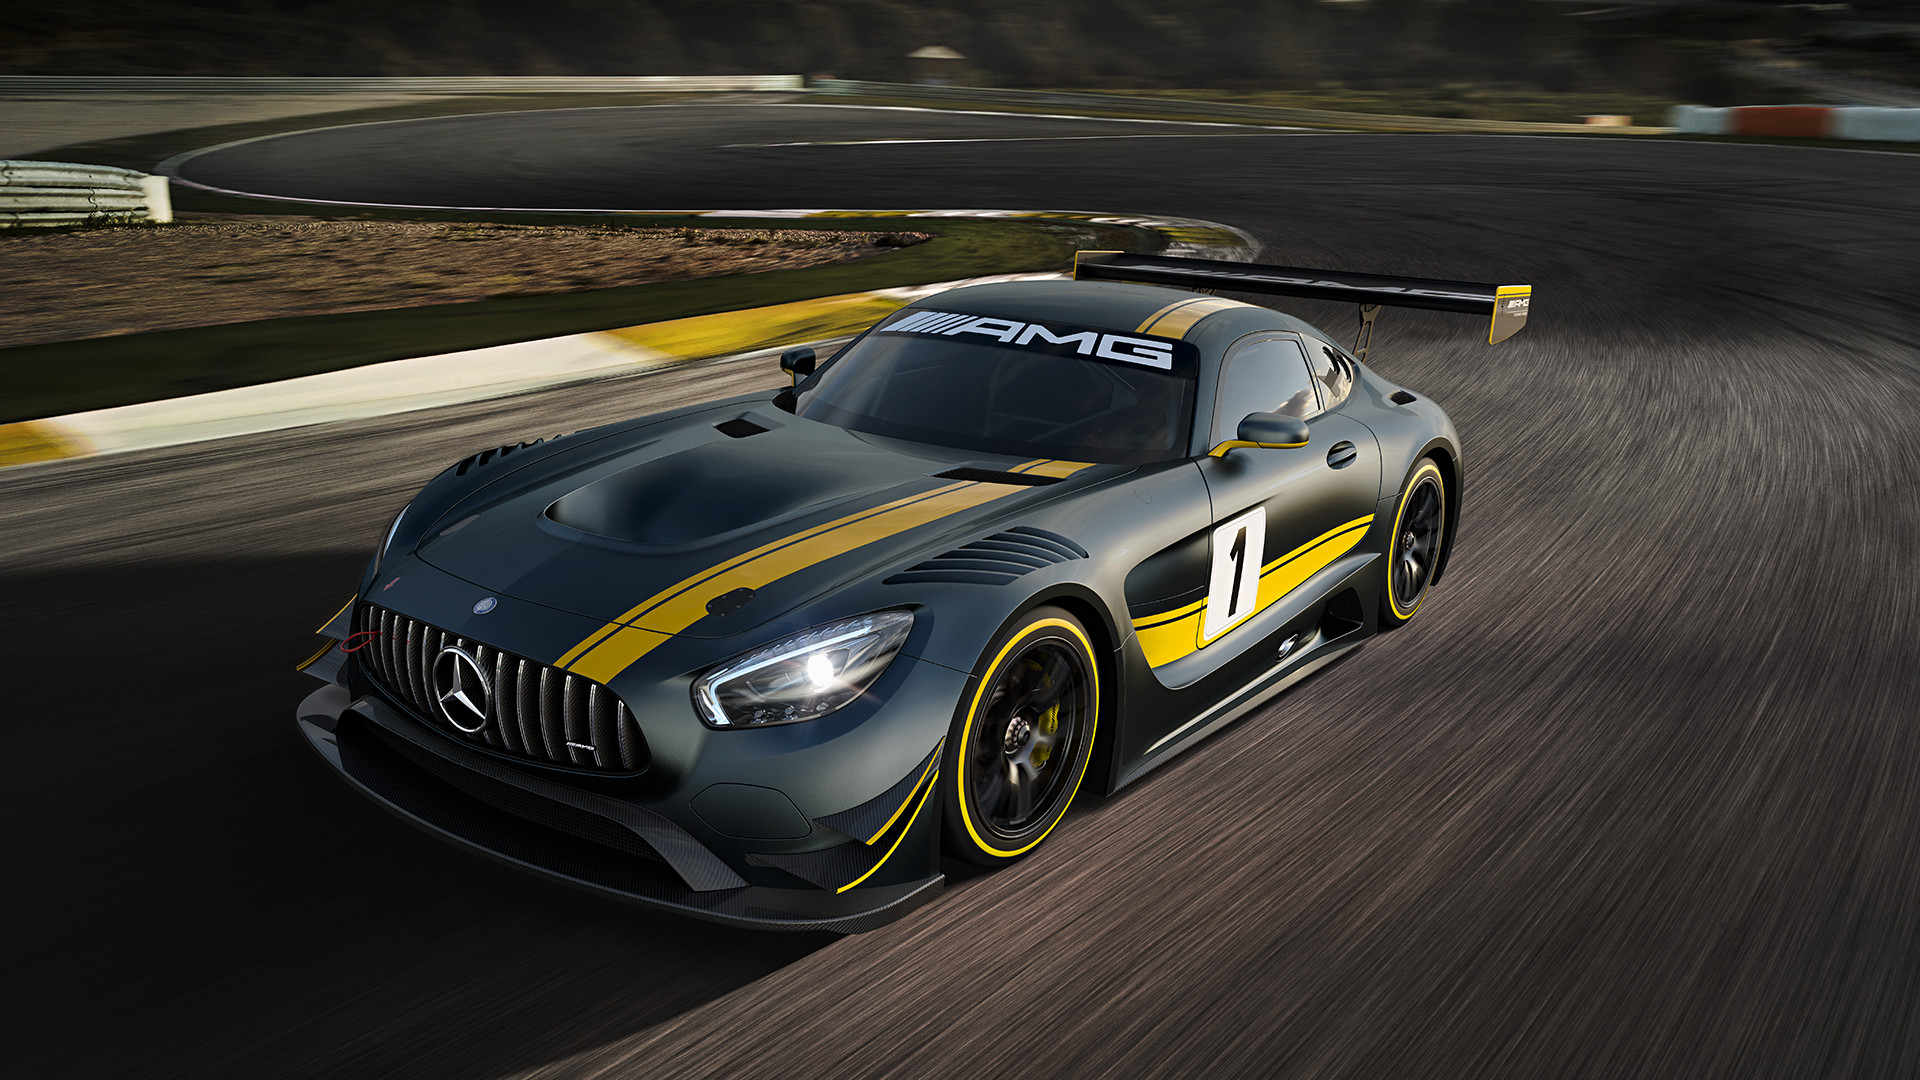 Win A Mercedes Amg Hot Lap Around The Official Grand Prix